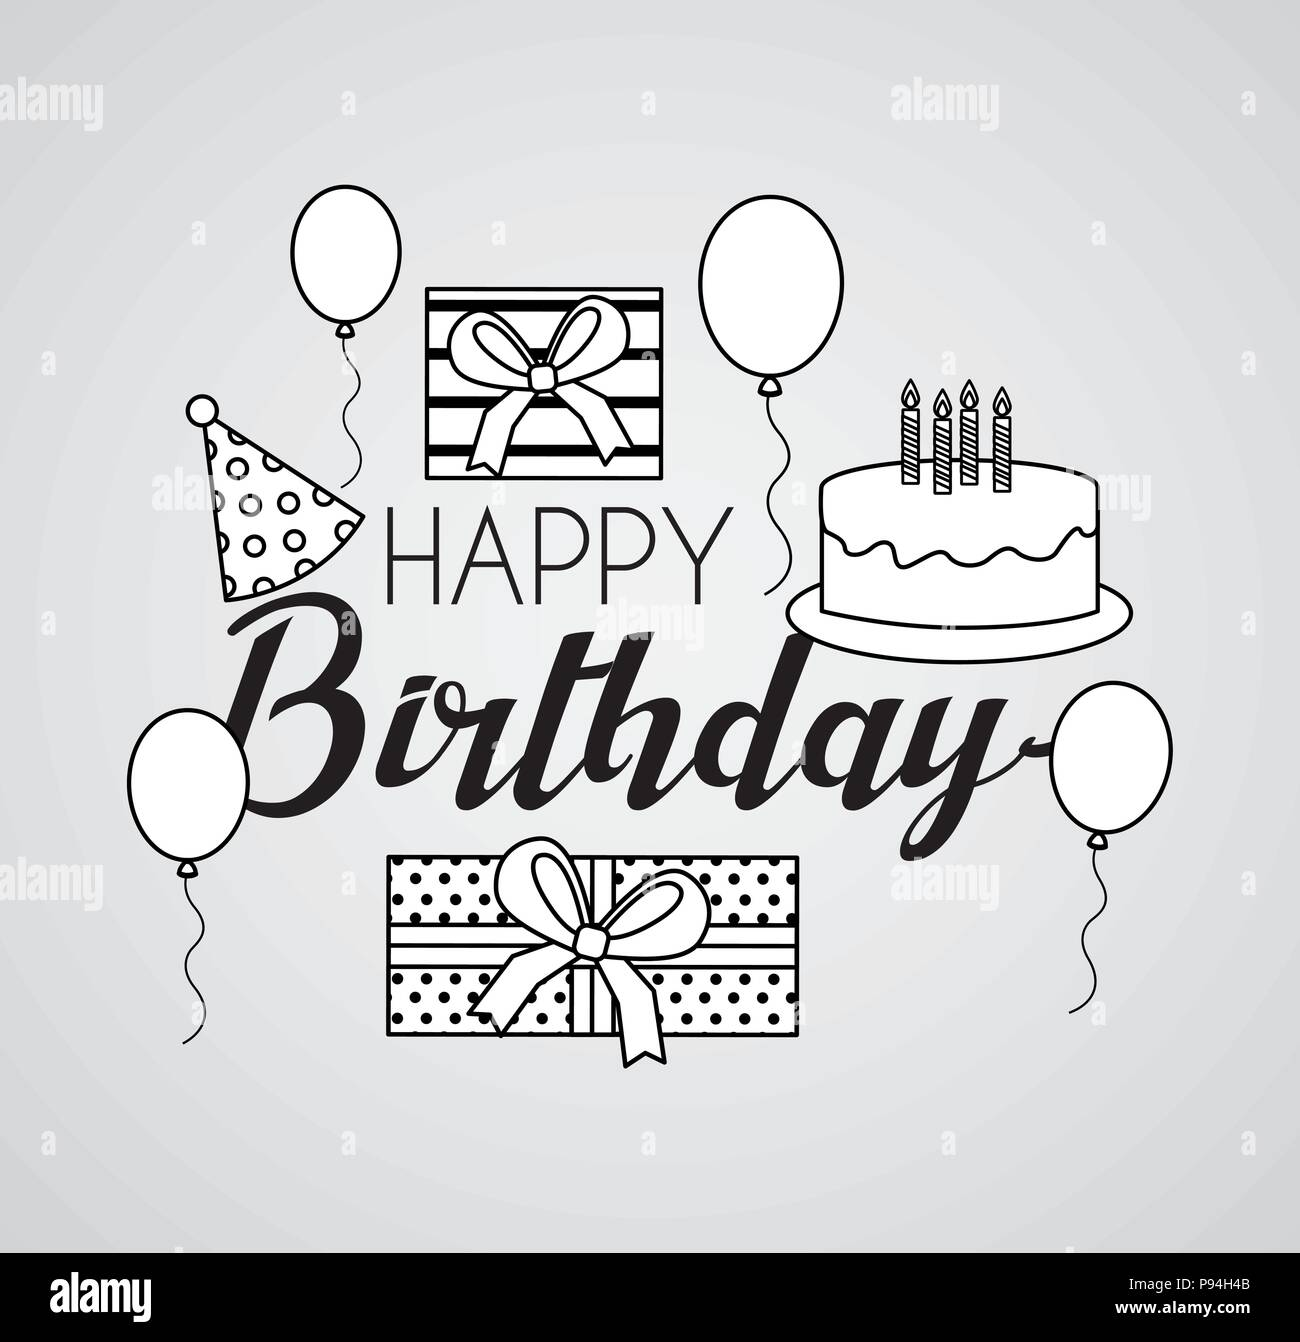 Stupendous Happy Birthday Card Draw Cake Hats Balloons Sign Vector Funny Birthday Cards Online Alyptdamsfinfo